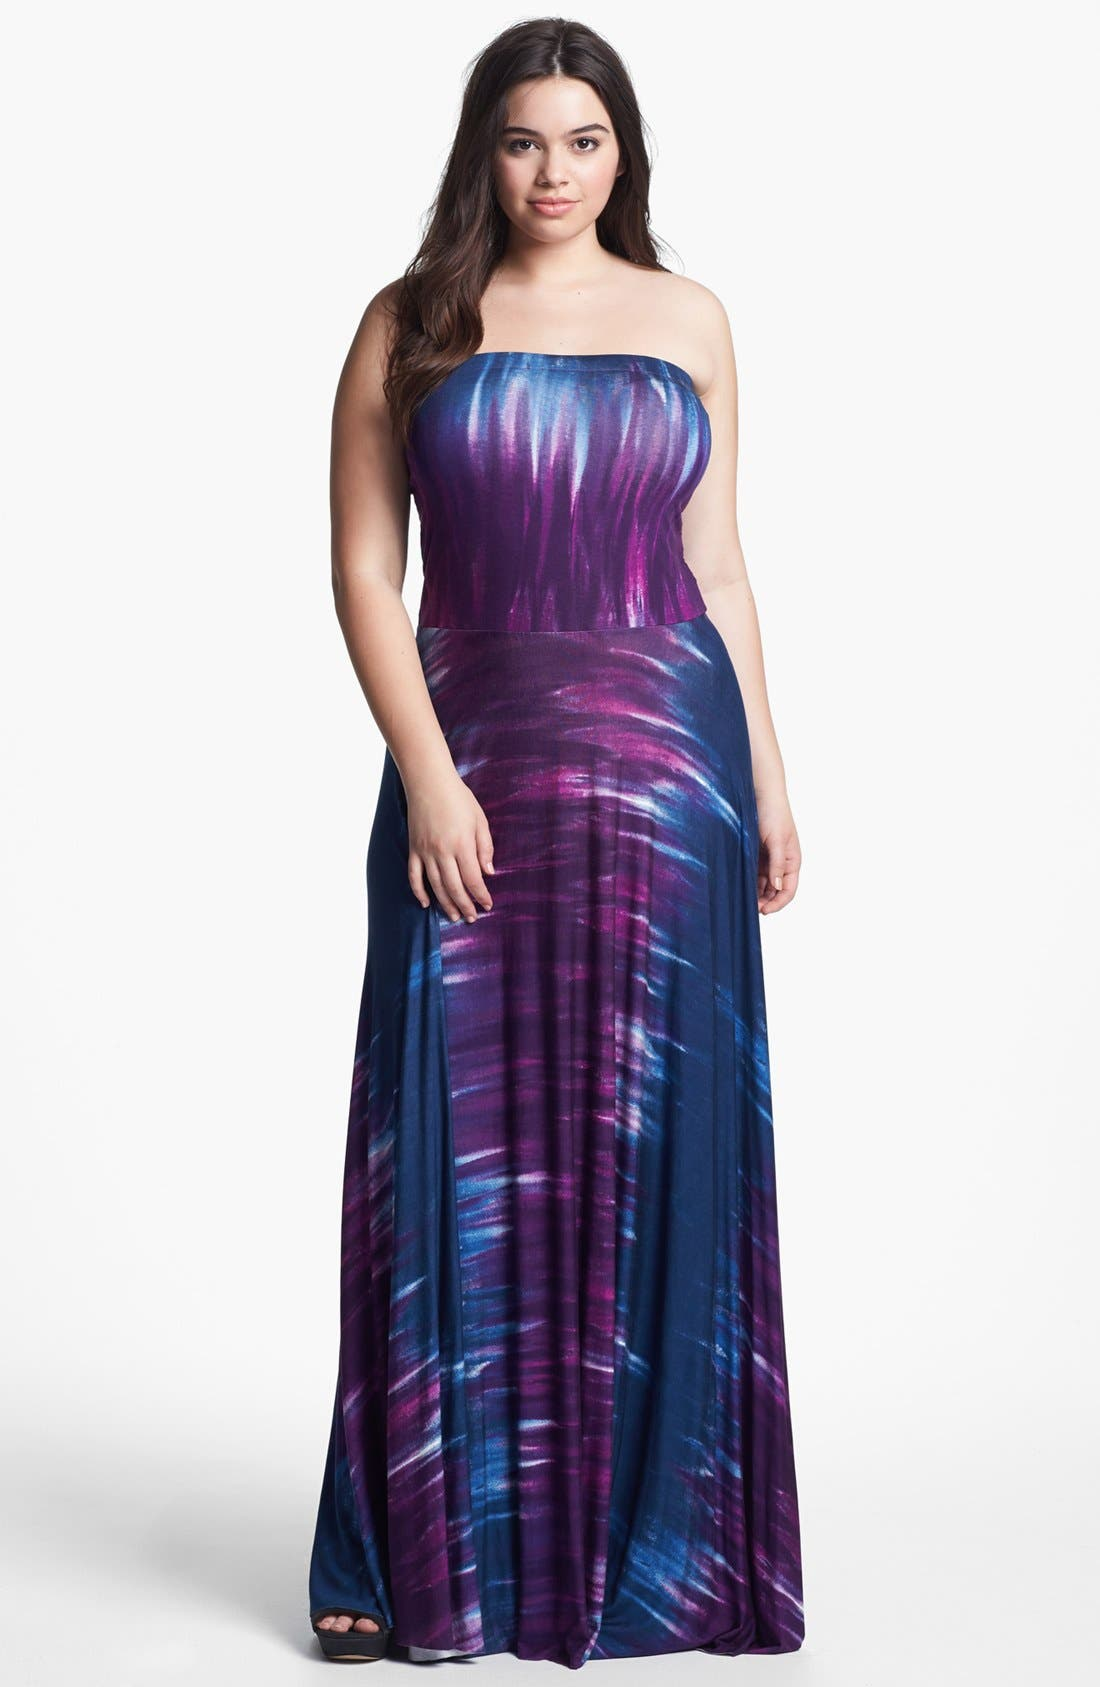 Alternate Image 1 Selected - Felicity & Coco Strapless Jersey Maxi Dress (Plus Size) (Nordstrom Exclusive)